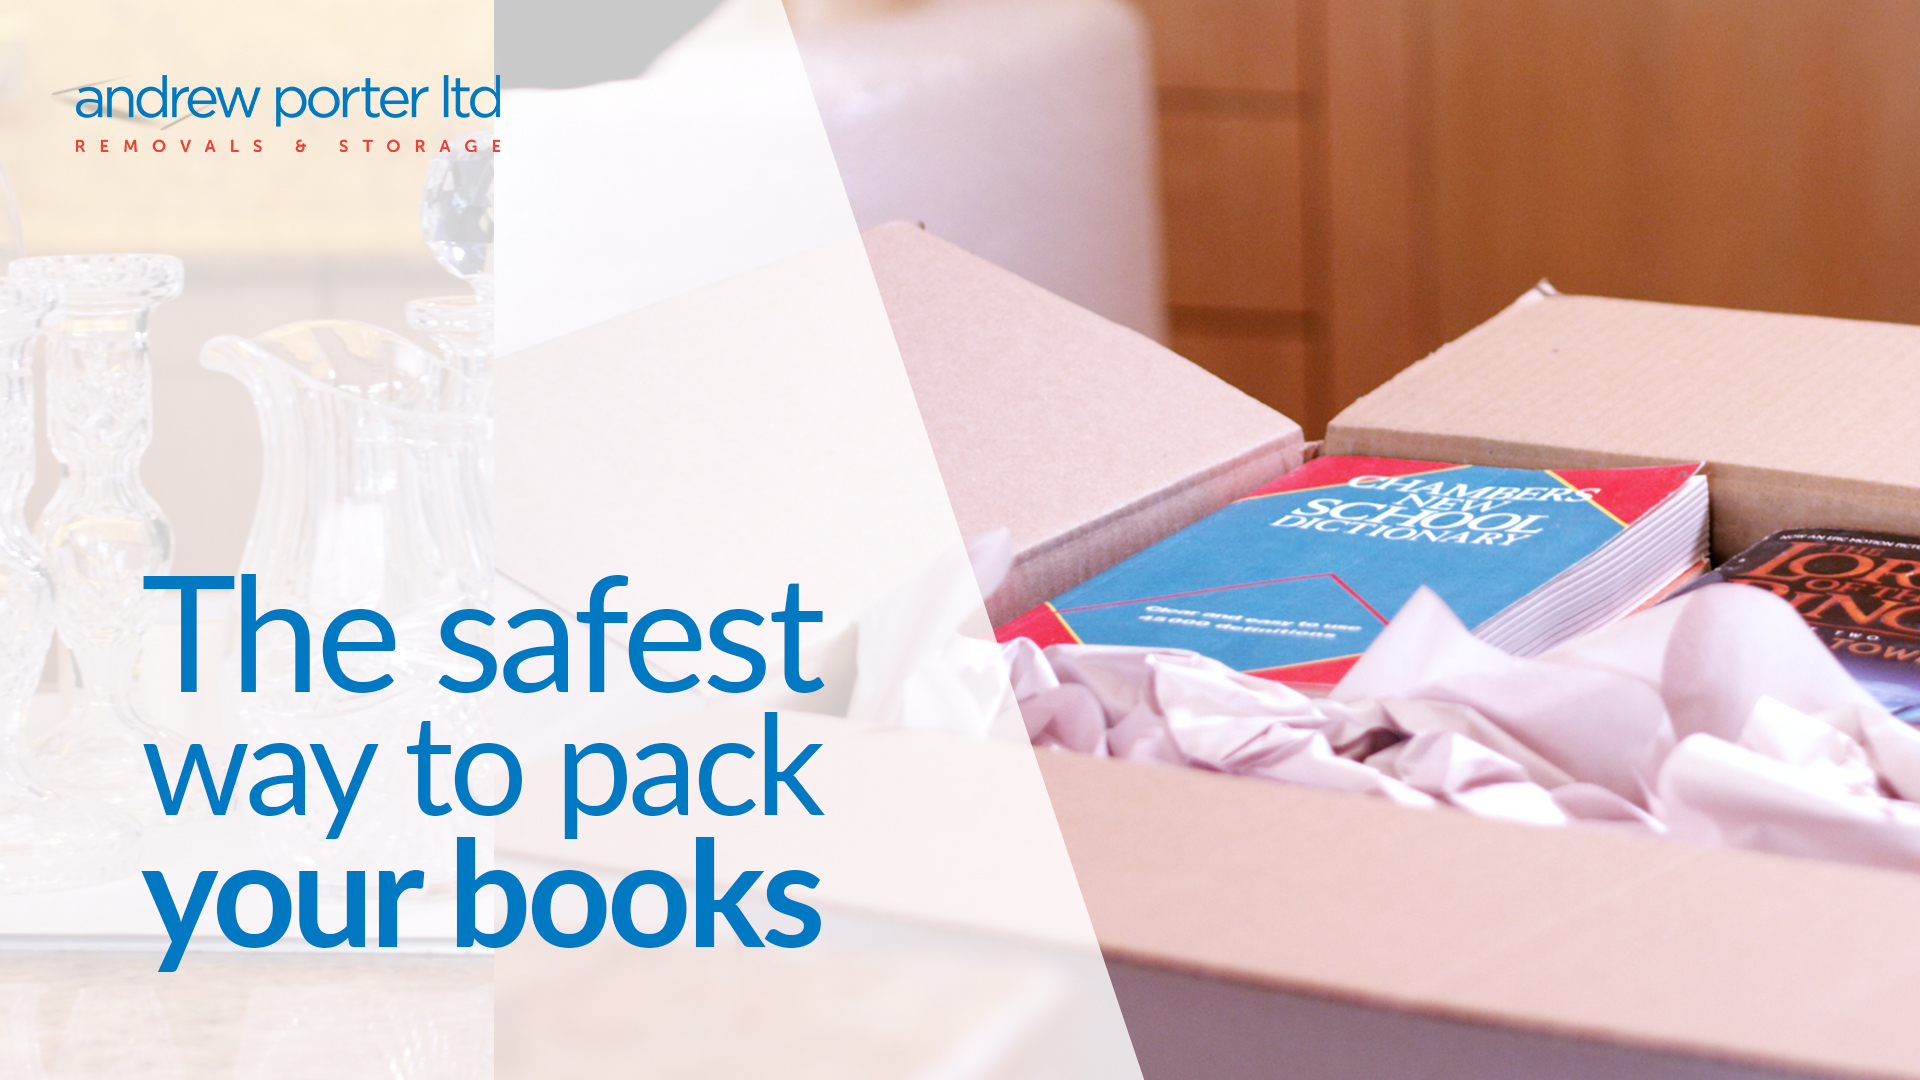 The safest way to pack your books